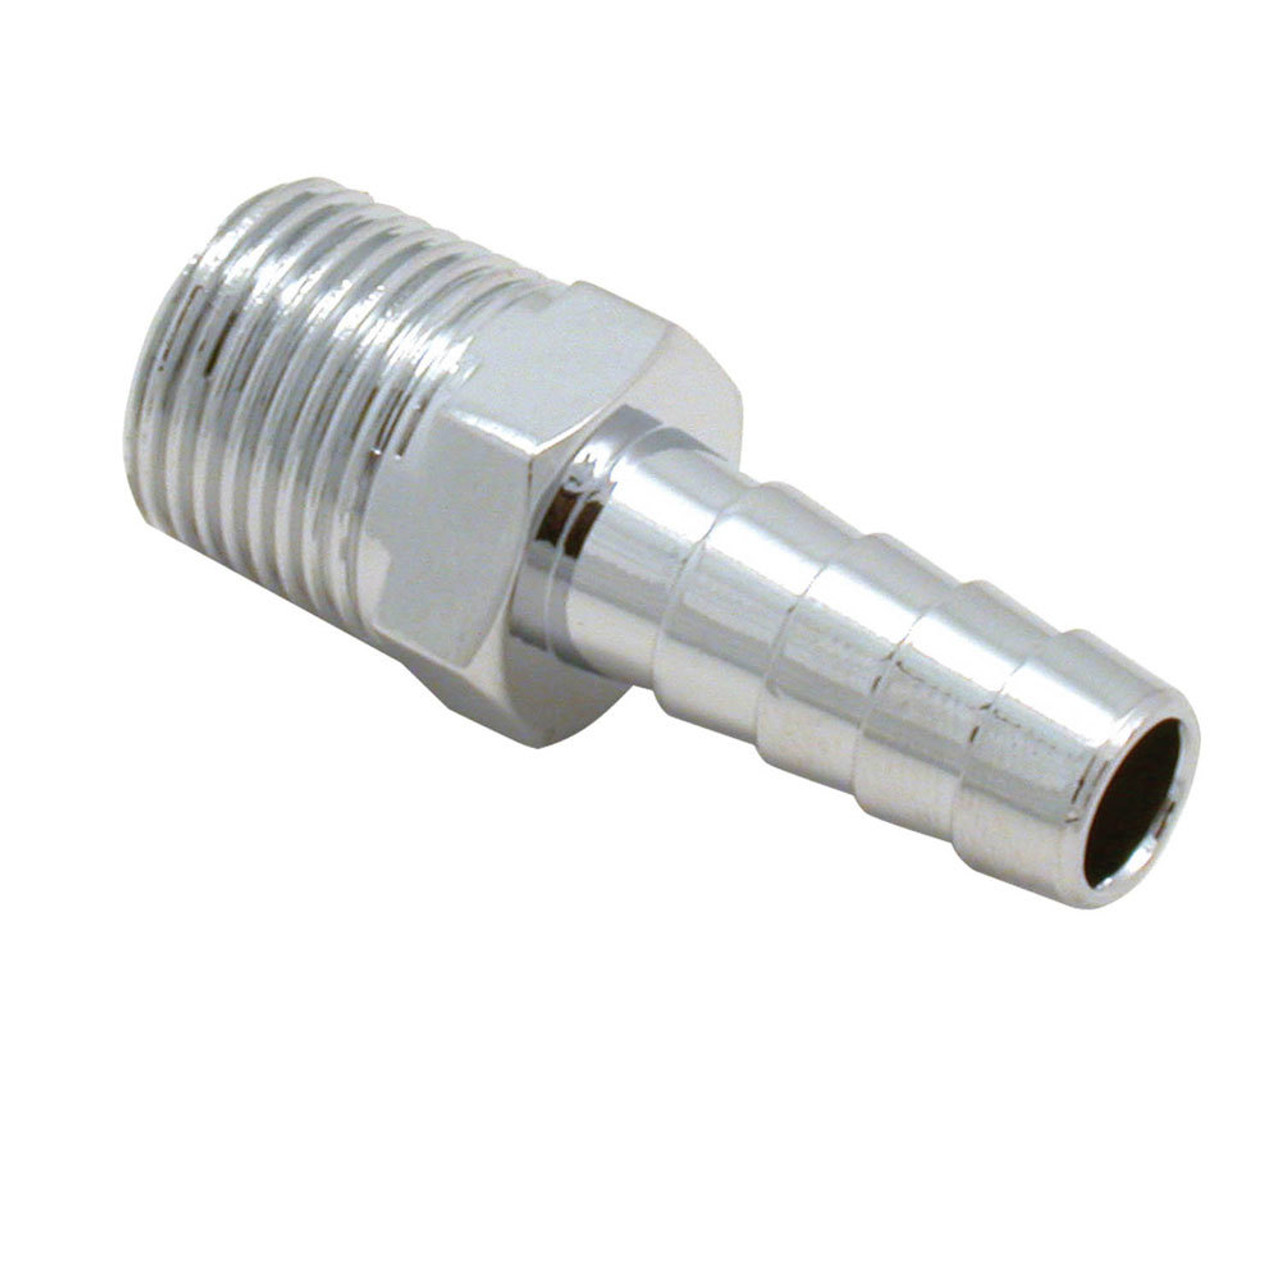 SPE5945, FUEL FITTING 3/8 in NPT Male to 3/8 in Hose Barb Chrome